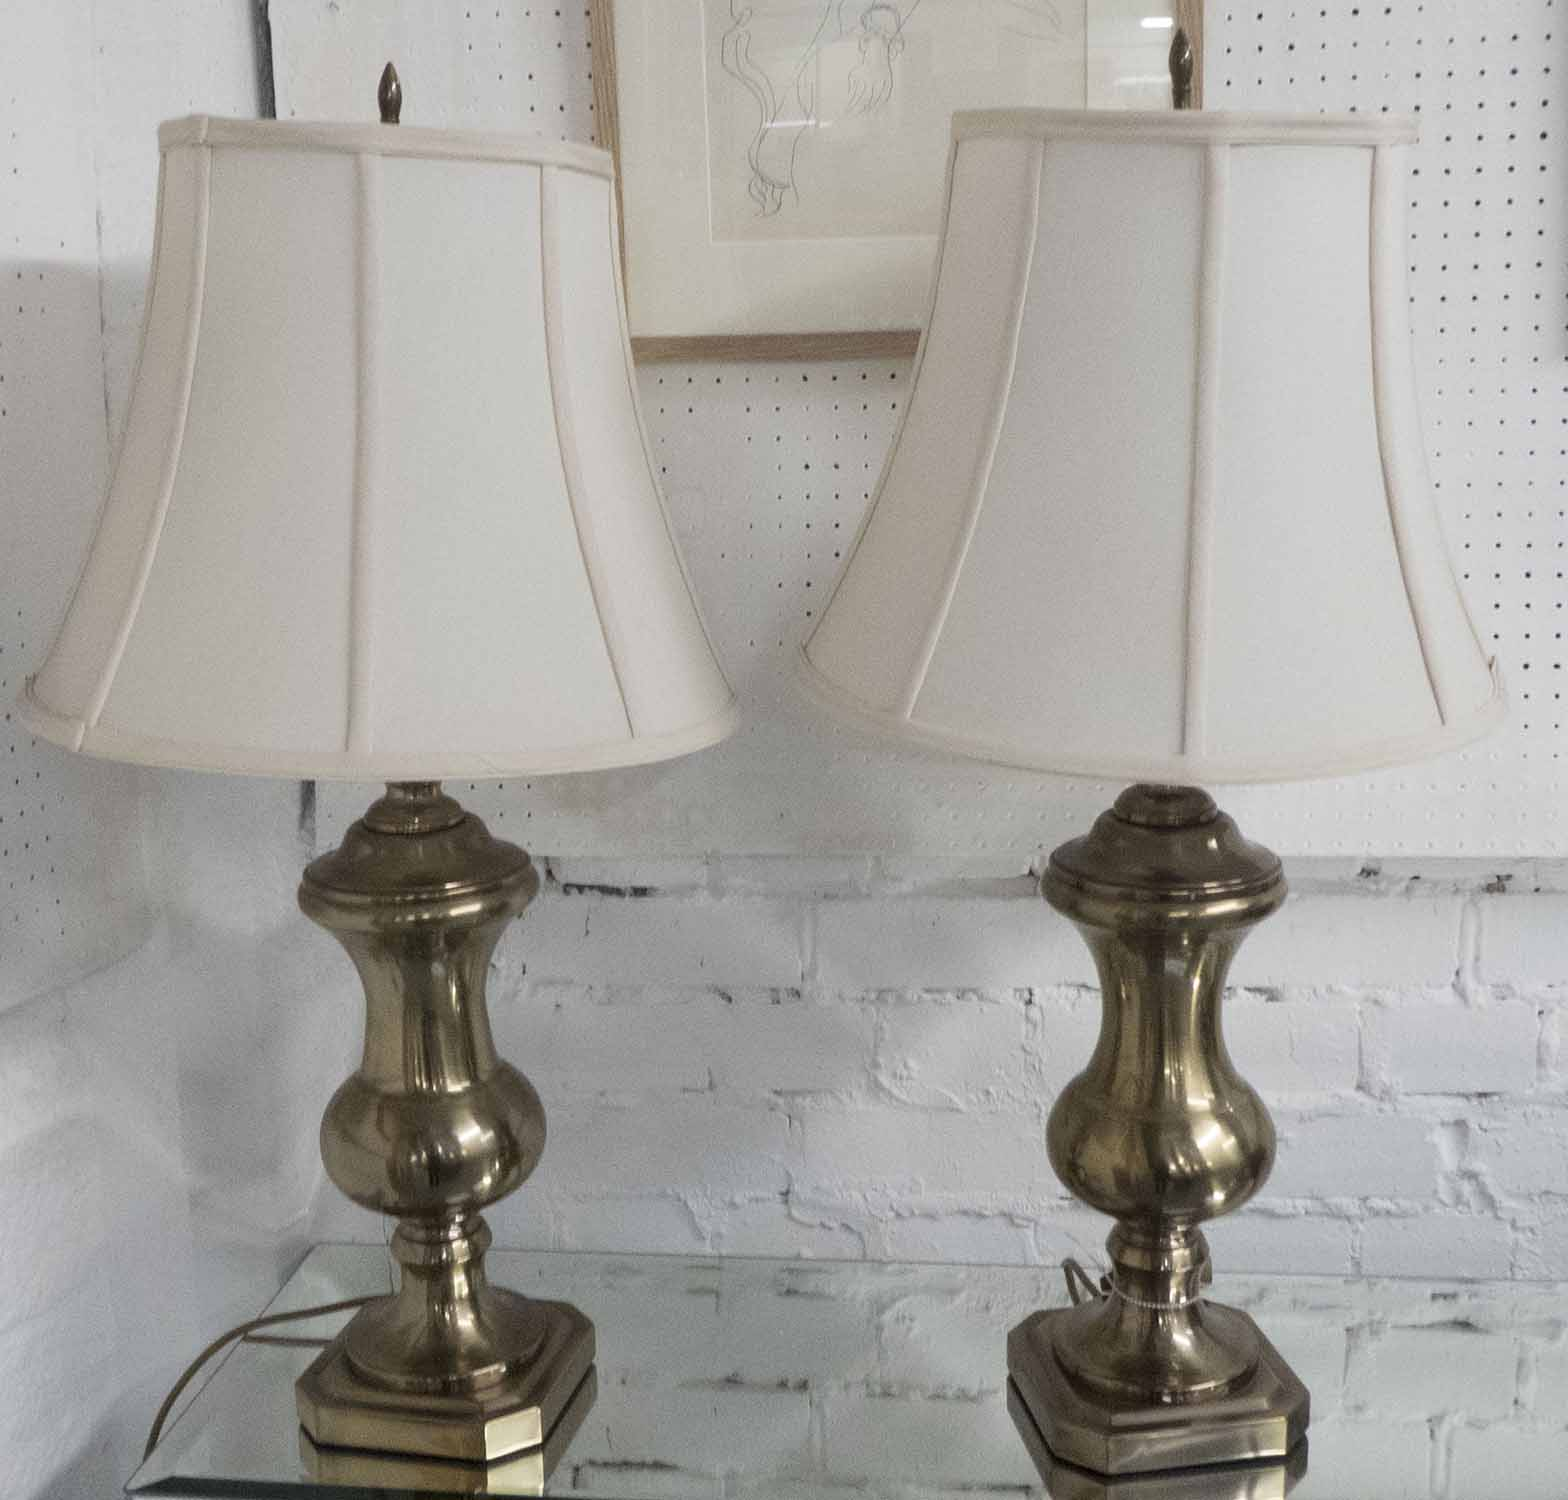 Lot 40 - TABLE LAMPS, a pair, metal urn shapes, overall each 77cm H, including shades.